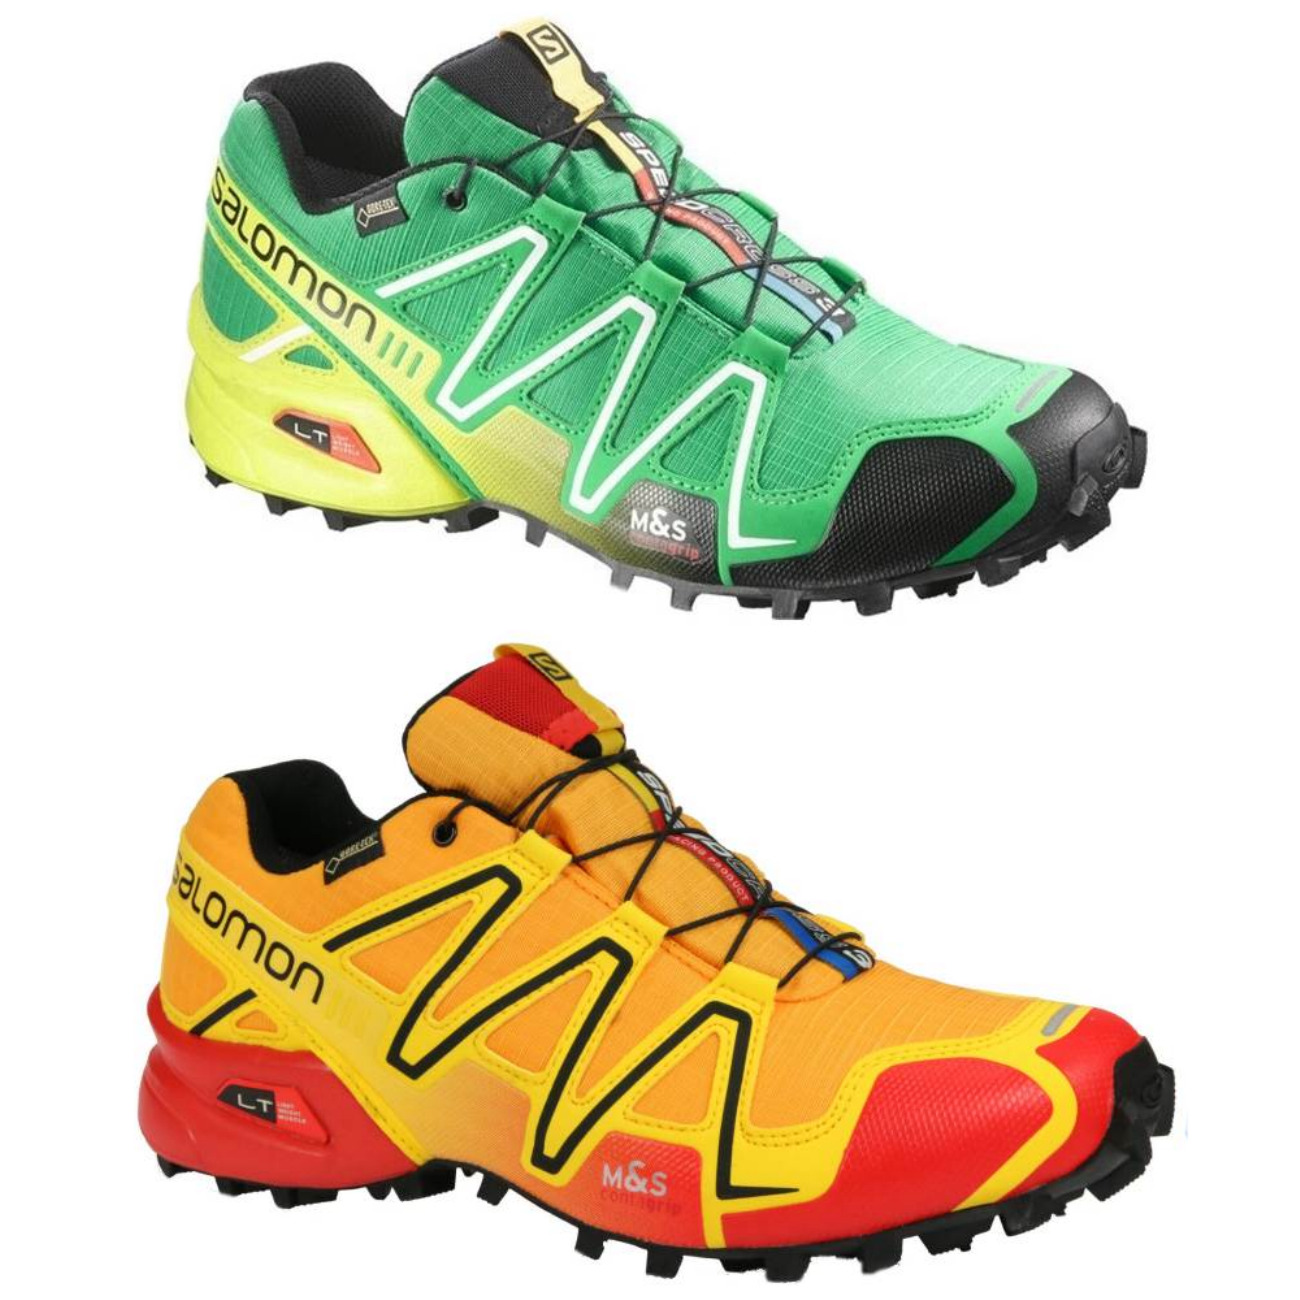 salomon speedcross 3 gtx schuhe laufschuhe trail running outdoor gore tex herren ebay. Black Bedroom Furniture Sets. Home Design Ideas